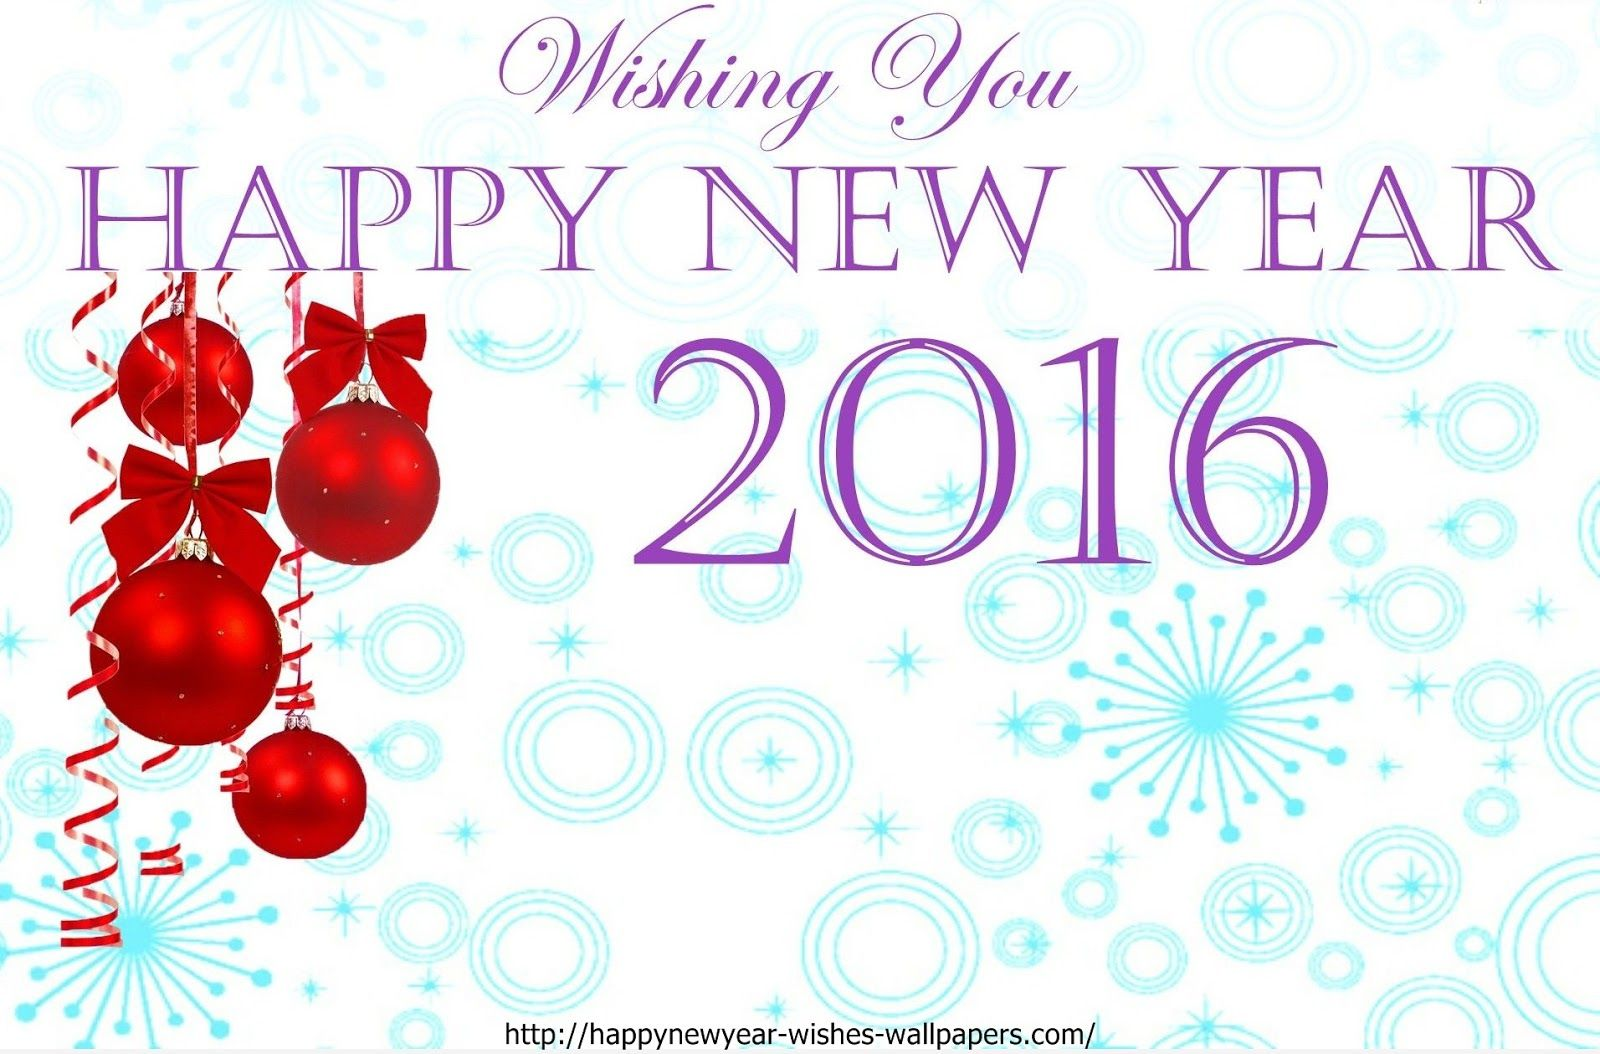 Happy New Year 2016 Happy New Year Gretings Card Designs For Your